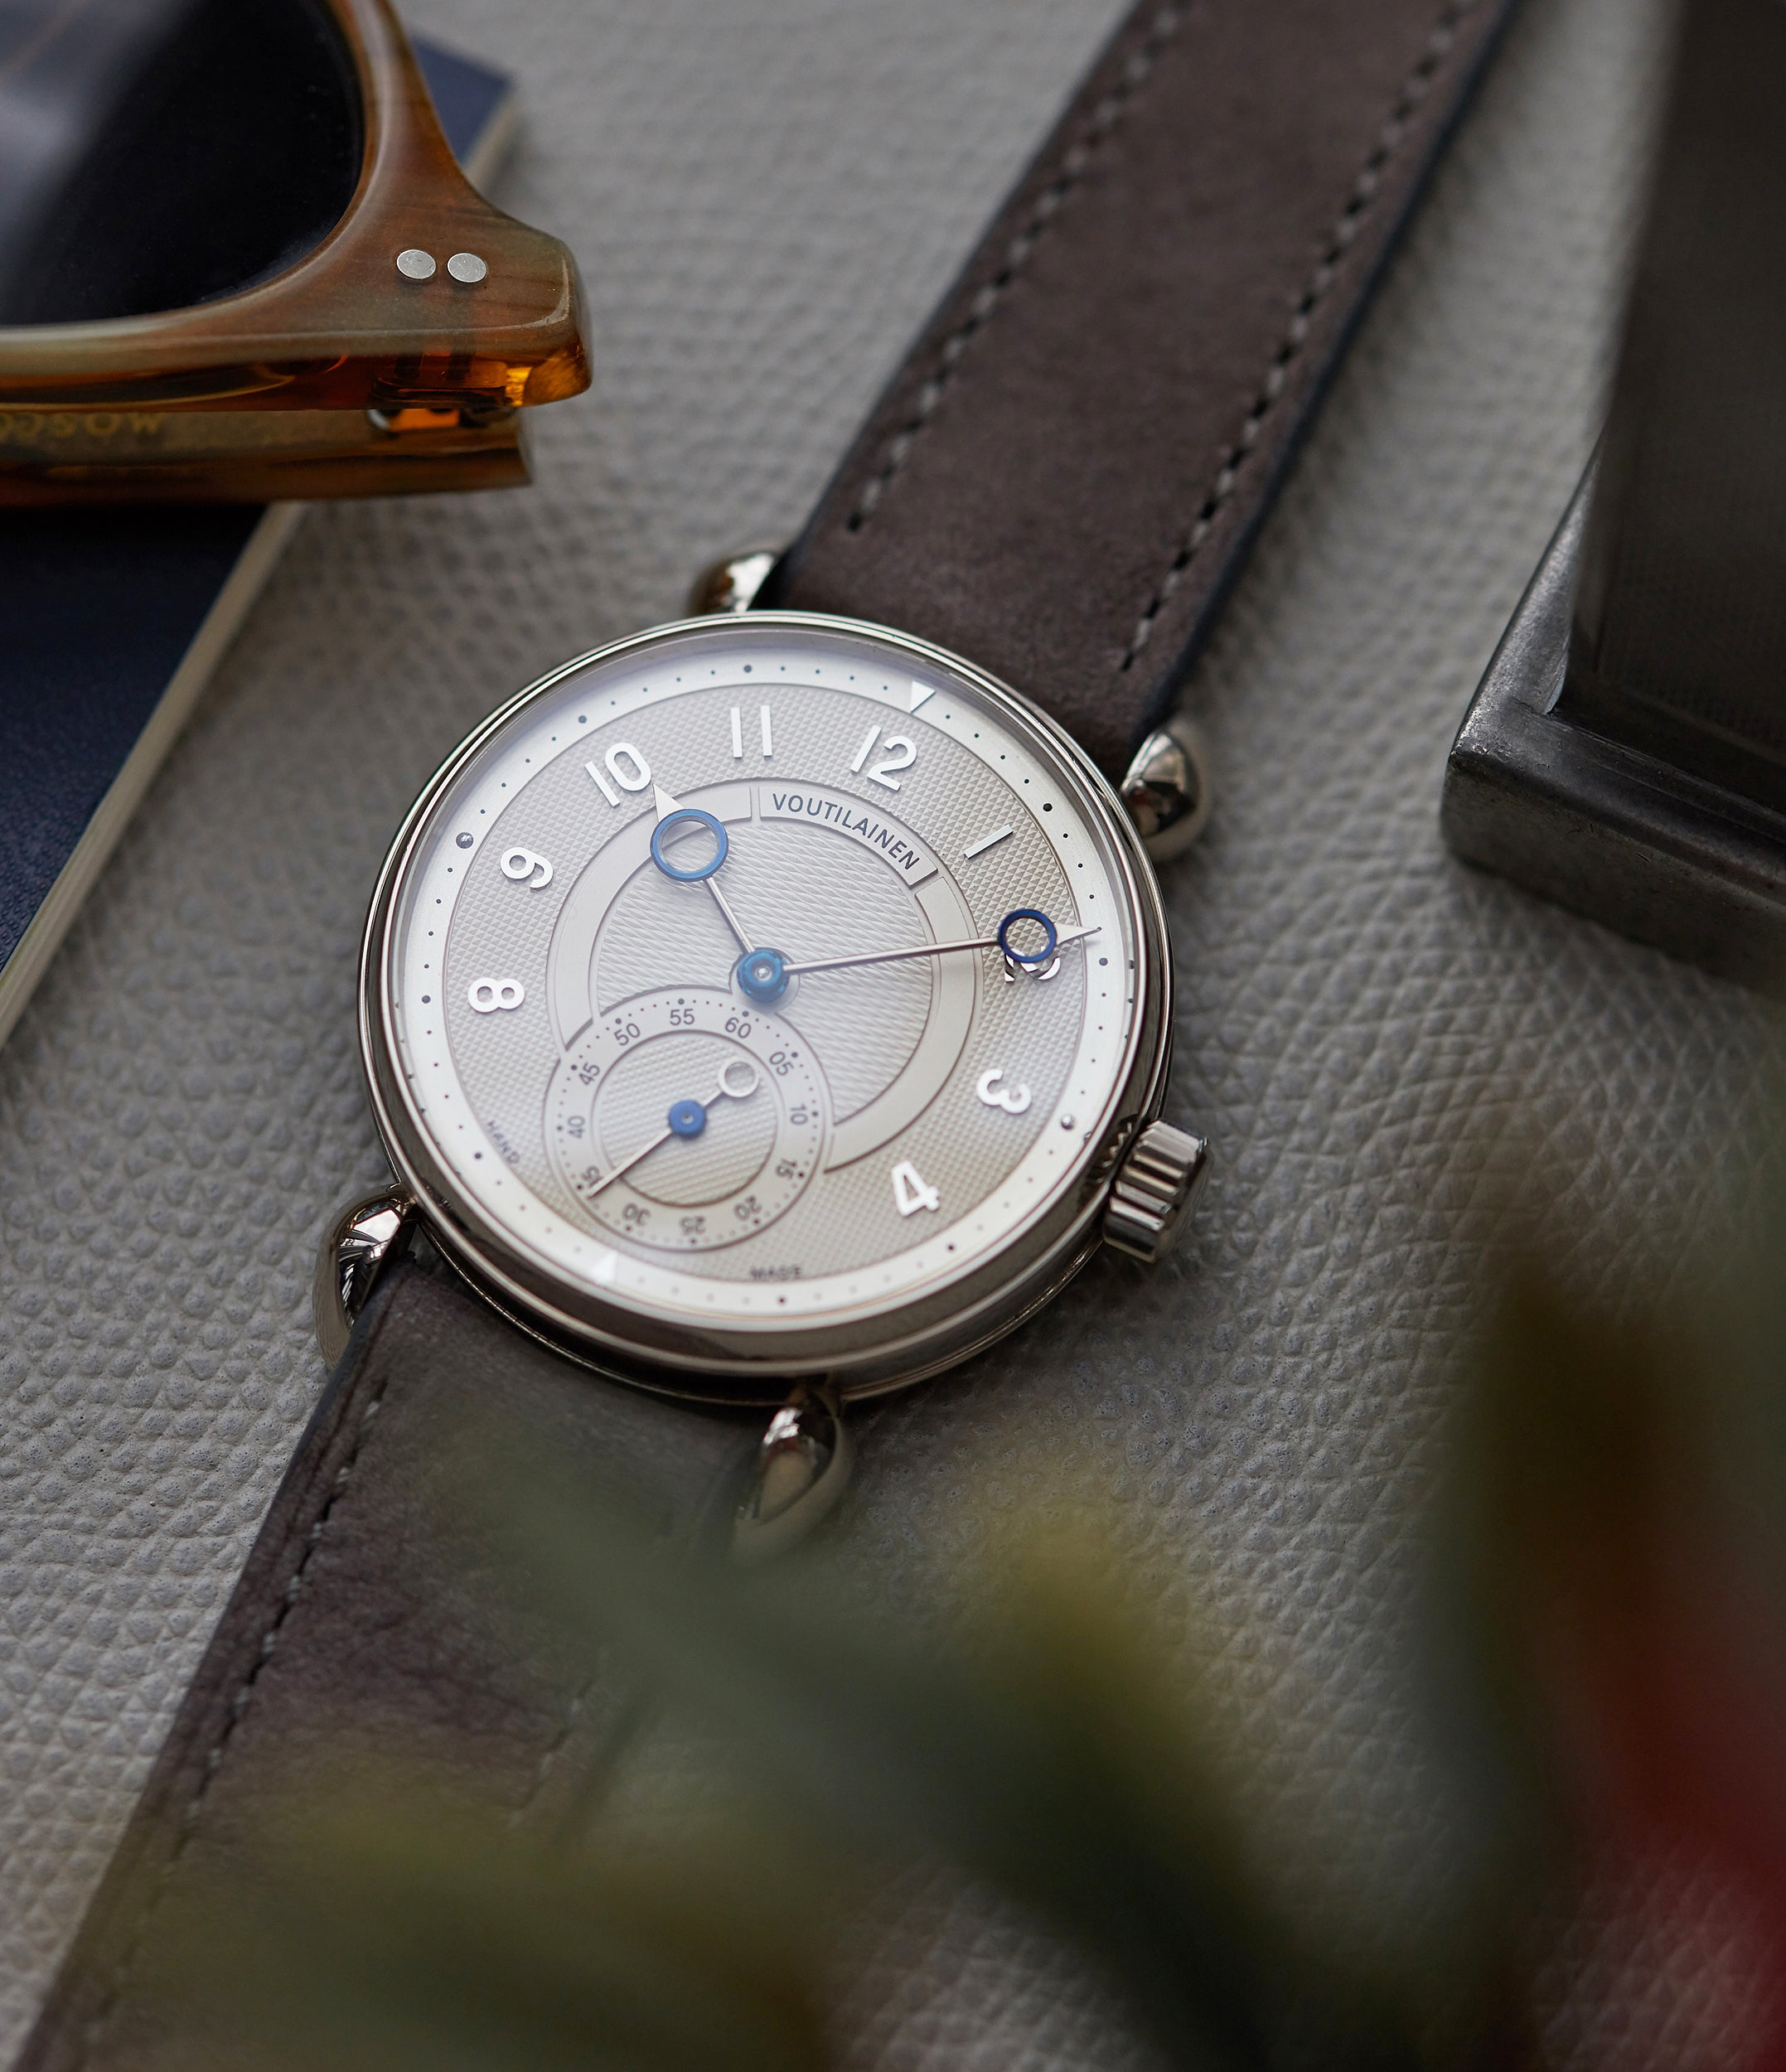 Observatoire Kari Voutilainen Limited Edition white gold dress watch independent watchmaker for sale online at A Collected Man London